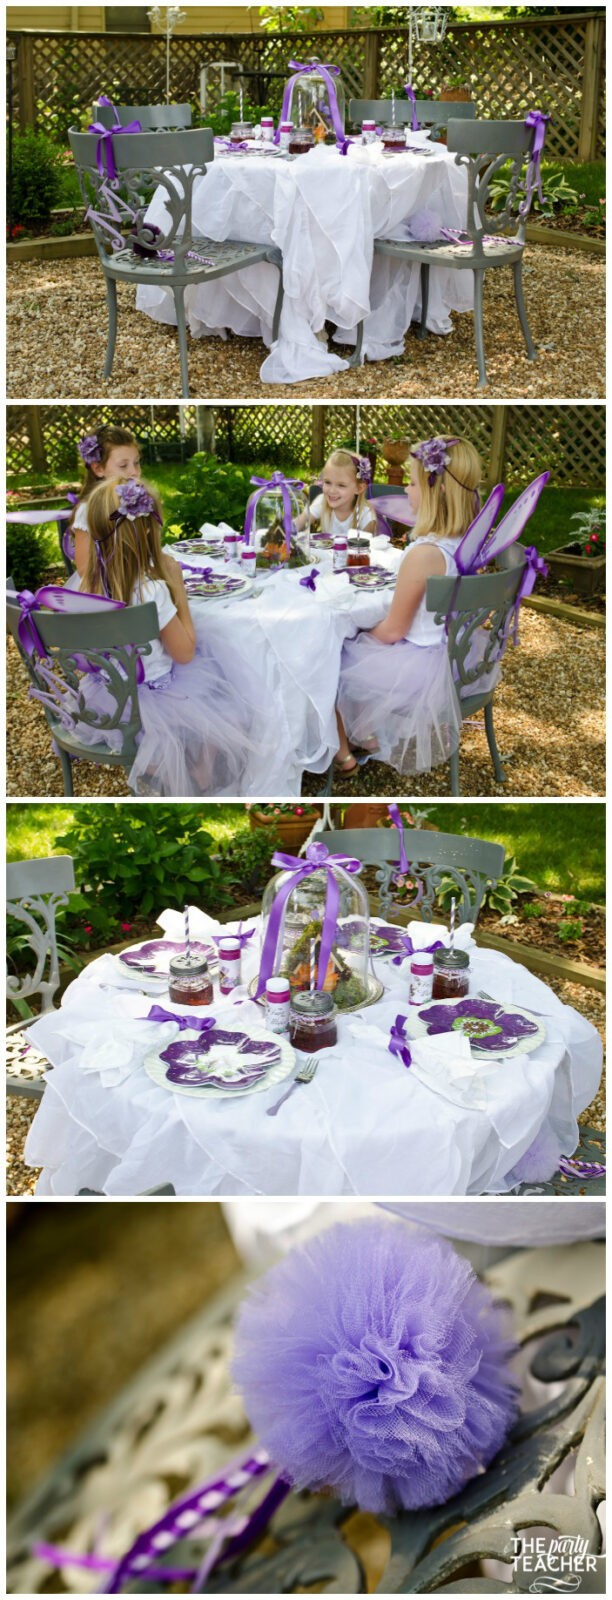 Flower Fairy Party by The Party Teacher - dining table